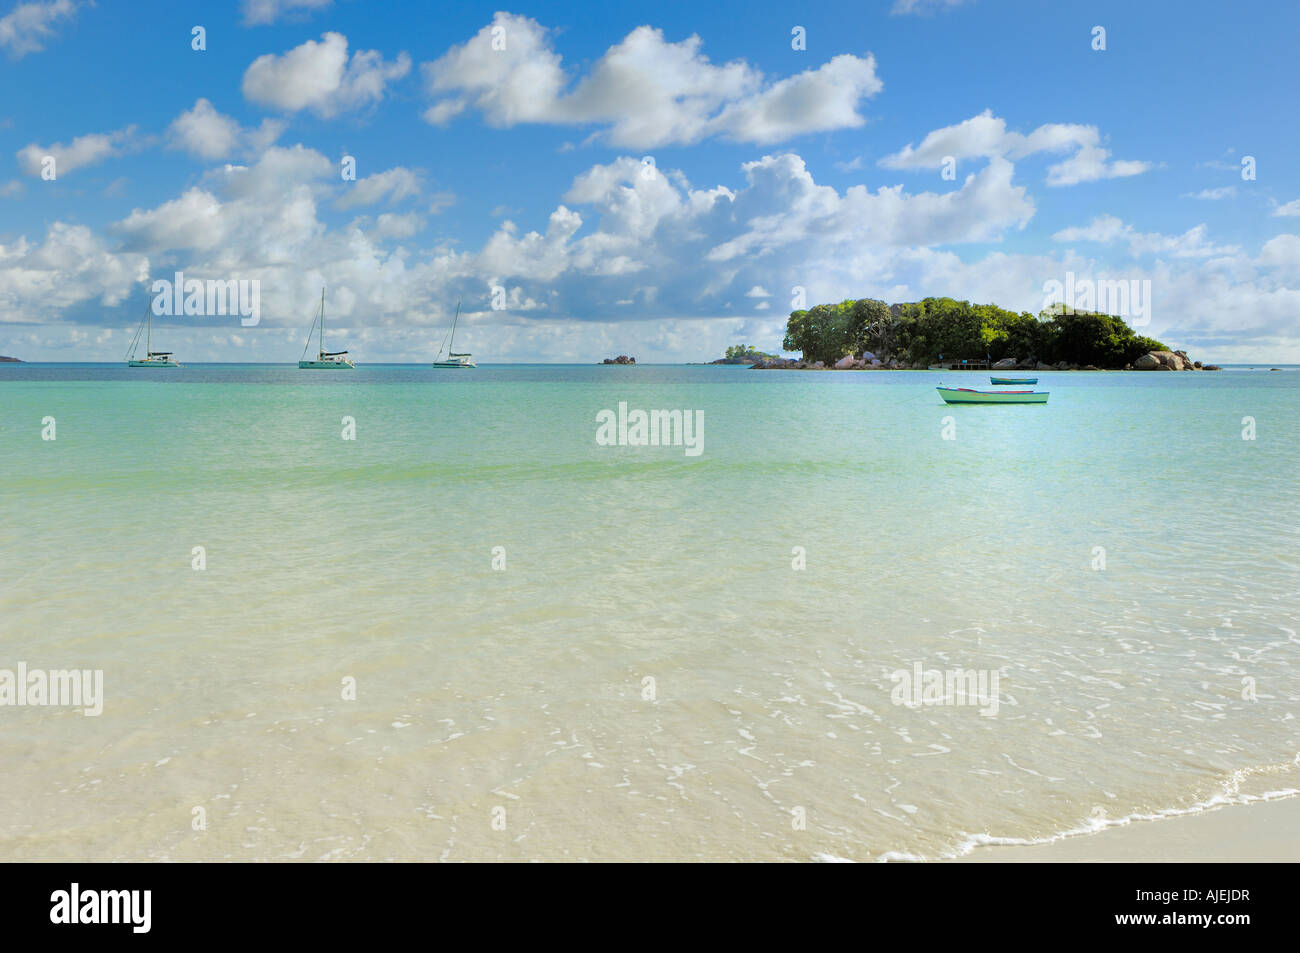 Tiny island in the warm calm waters of  Indian Ocean Stock Photo